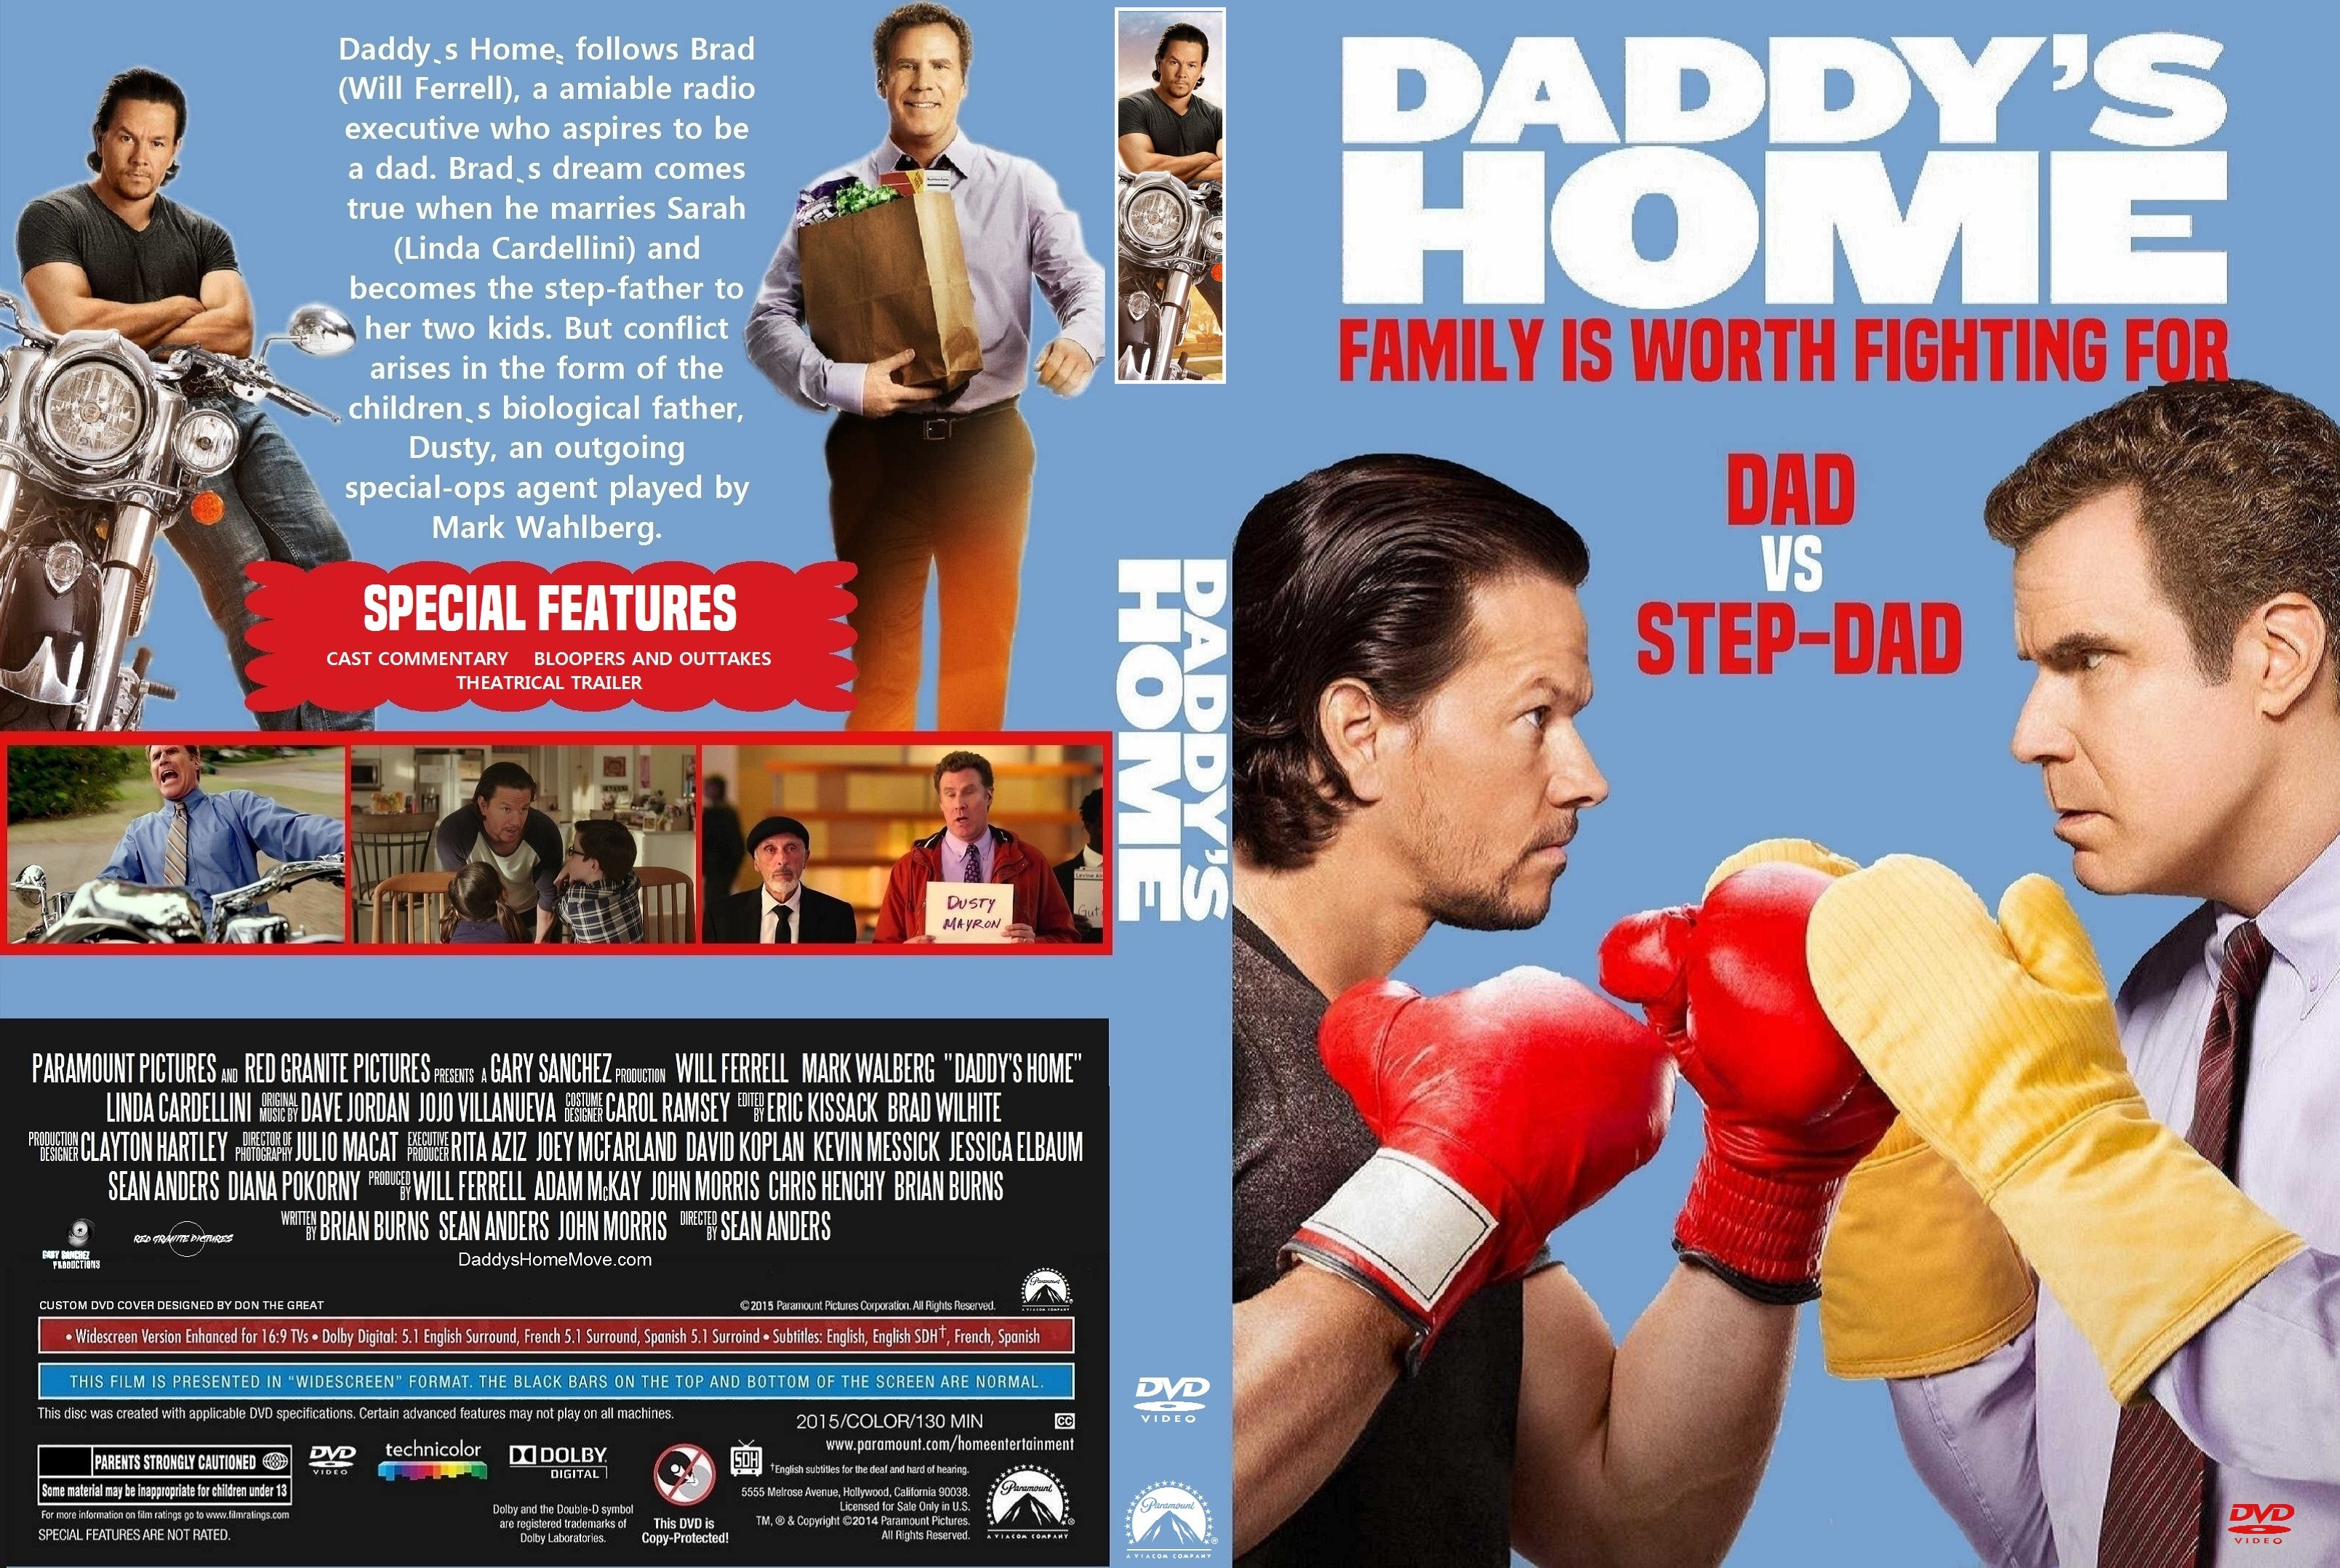 daddys home 2015 r1 dvd cover dvd covers cover century over rh covercentury com home again 2017 dvd cover spider man homecoming dvd cover